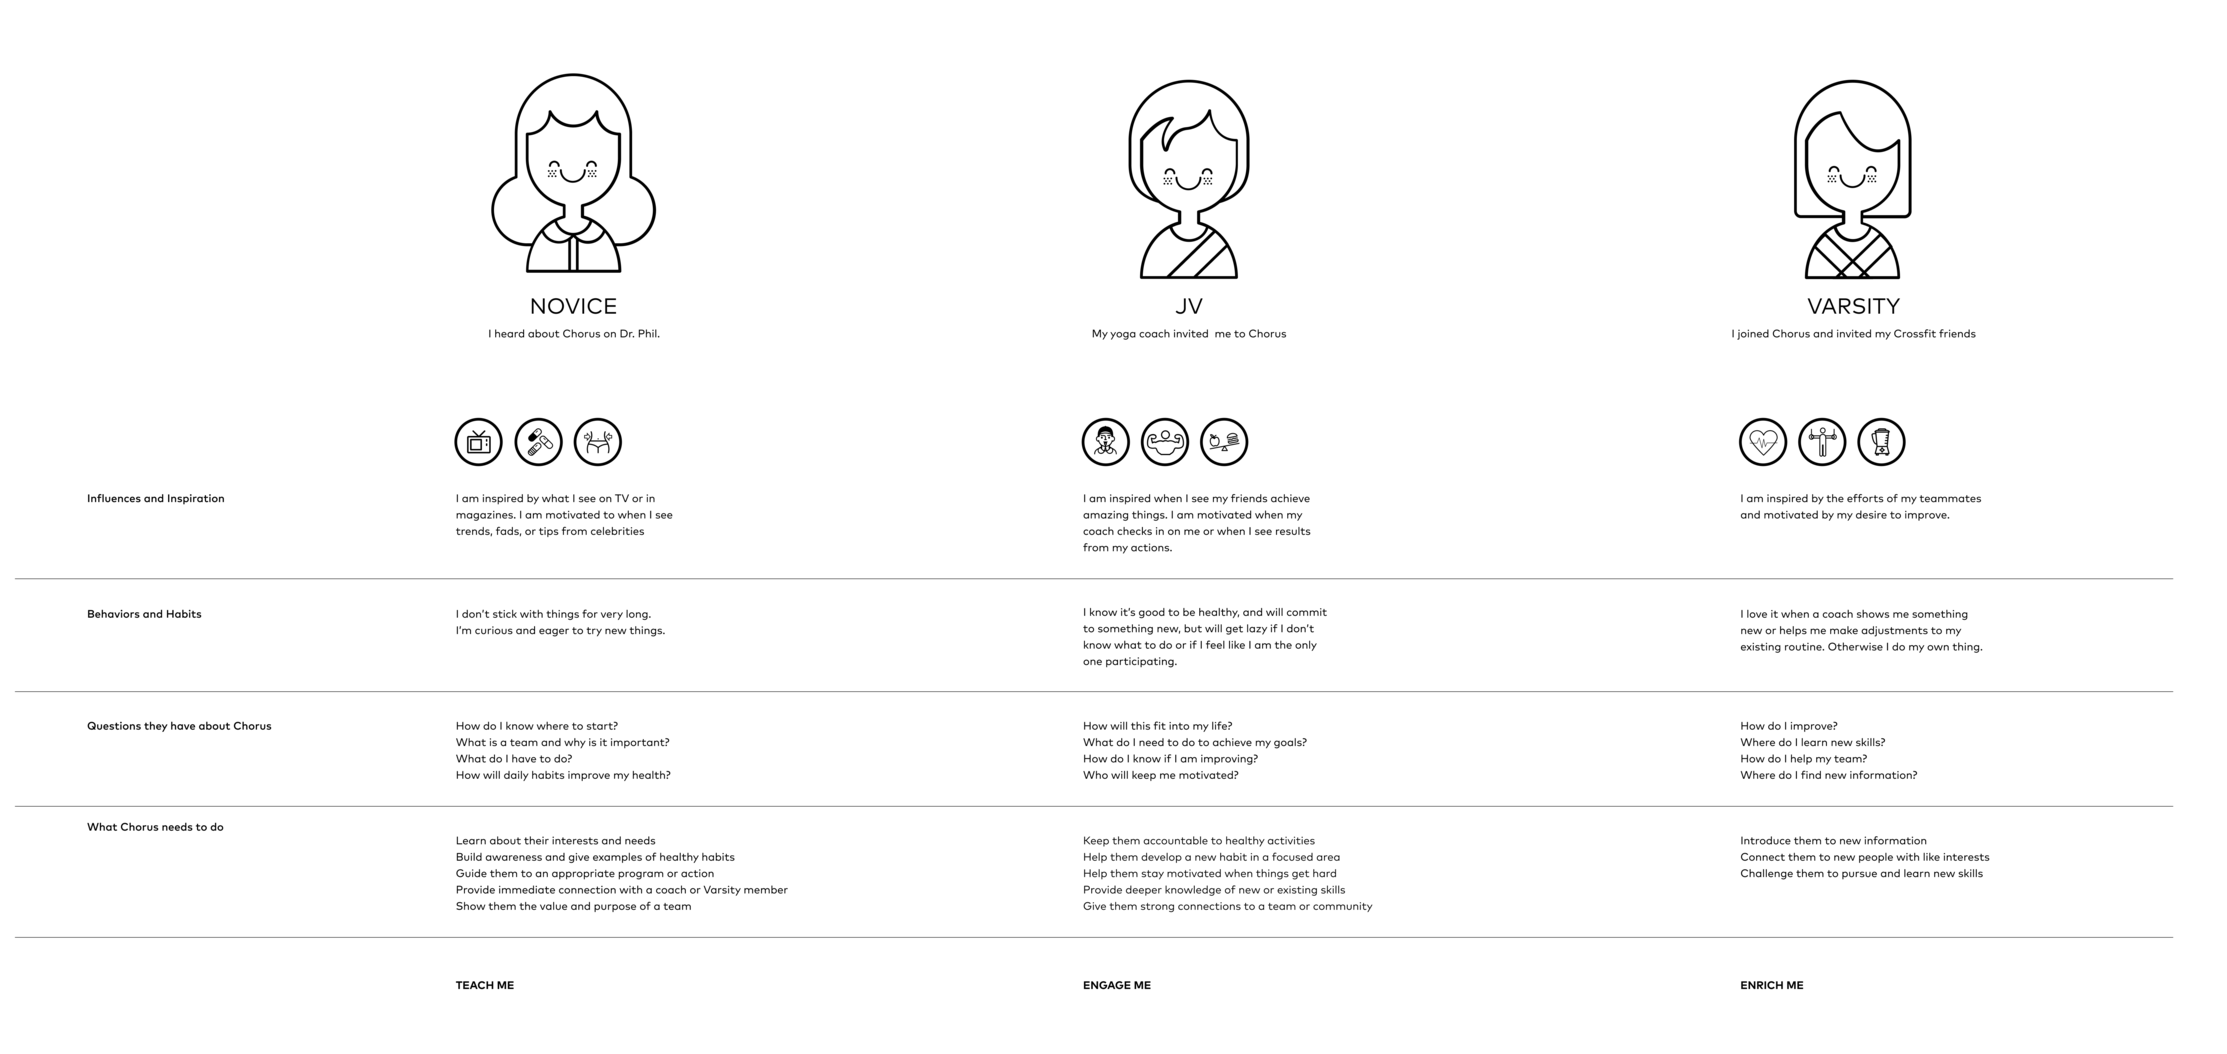 """Based on research and early prototype insights, I created three user archetypes that helped the team focus our efforts. For our beta and launch, we focused on building an experience for """"varsity"""" teams who already had a fitness habit. This let us simplify and focus development on social accountability and collective action rather than workout design."""